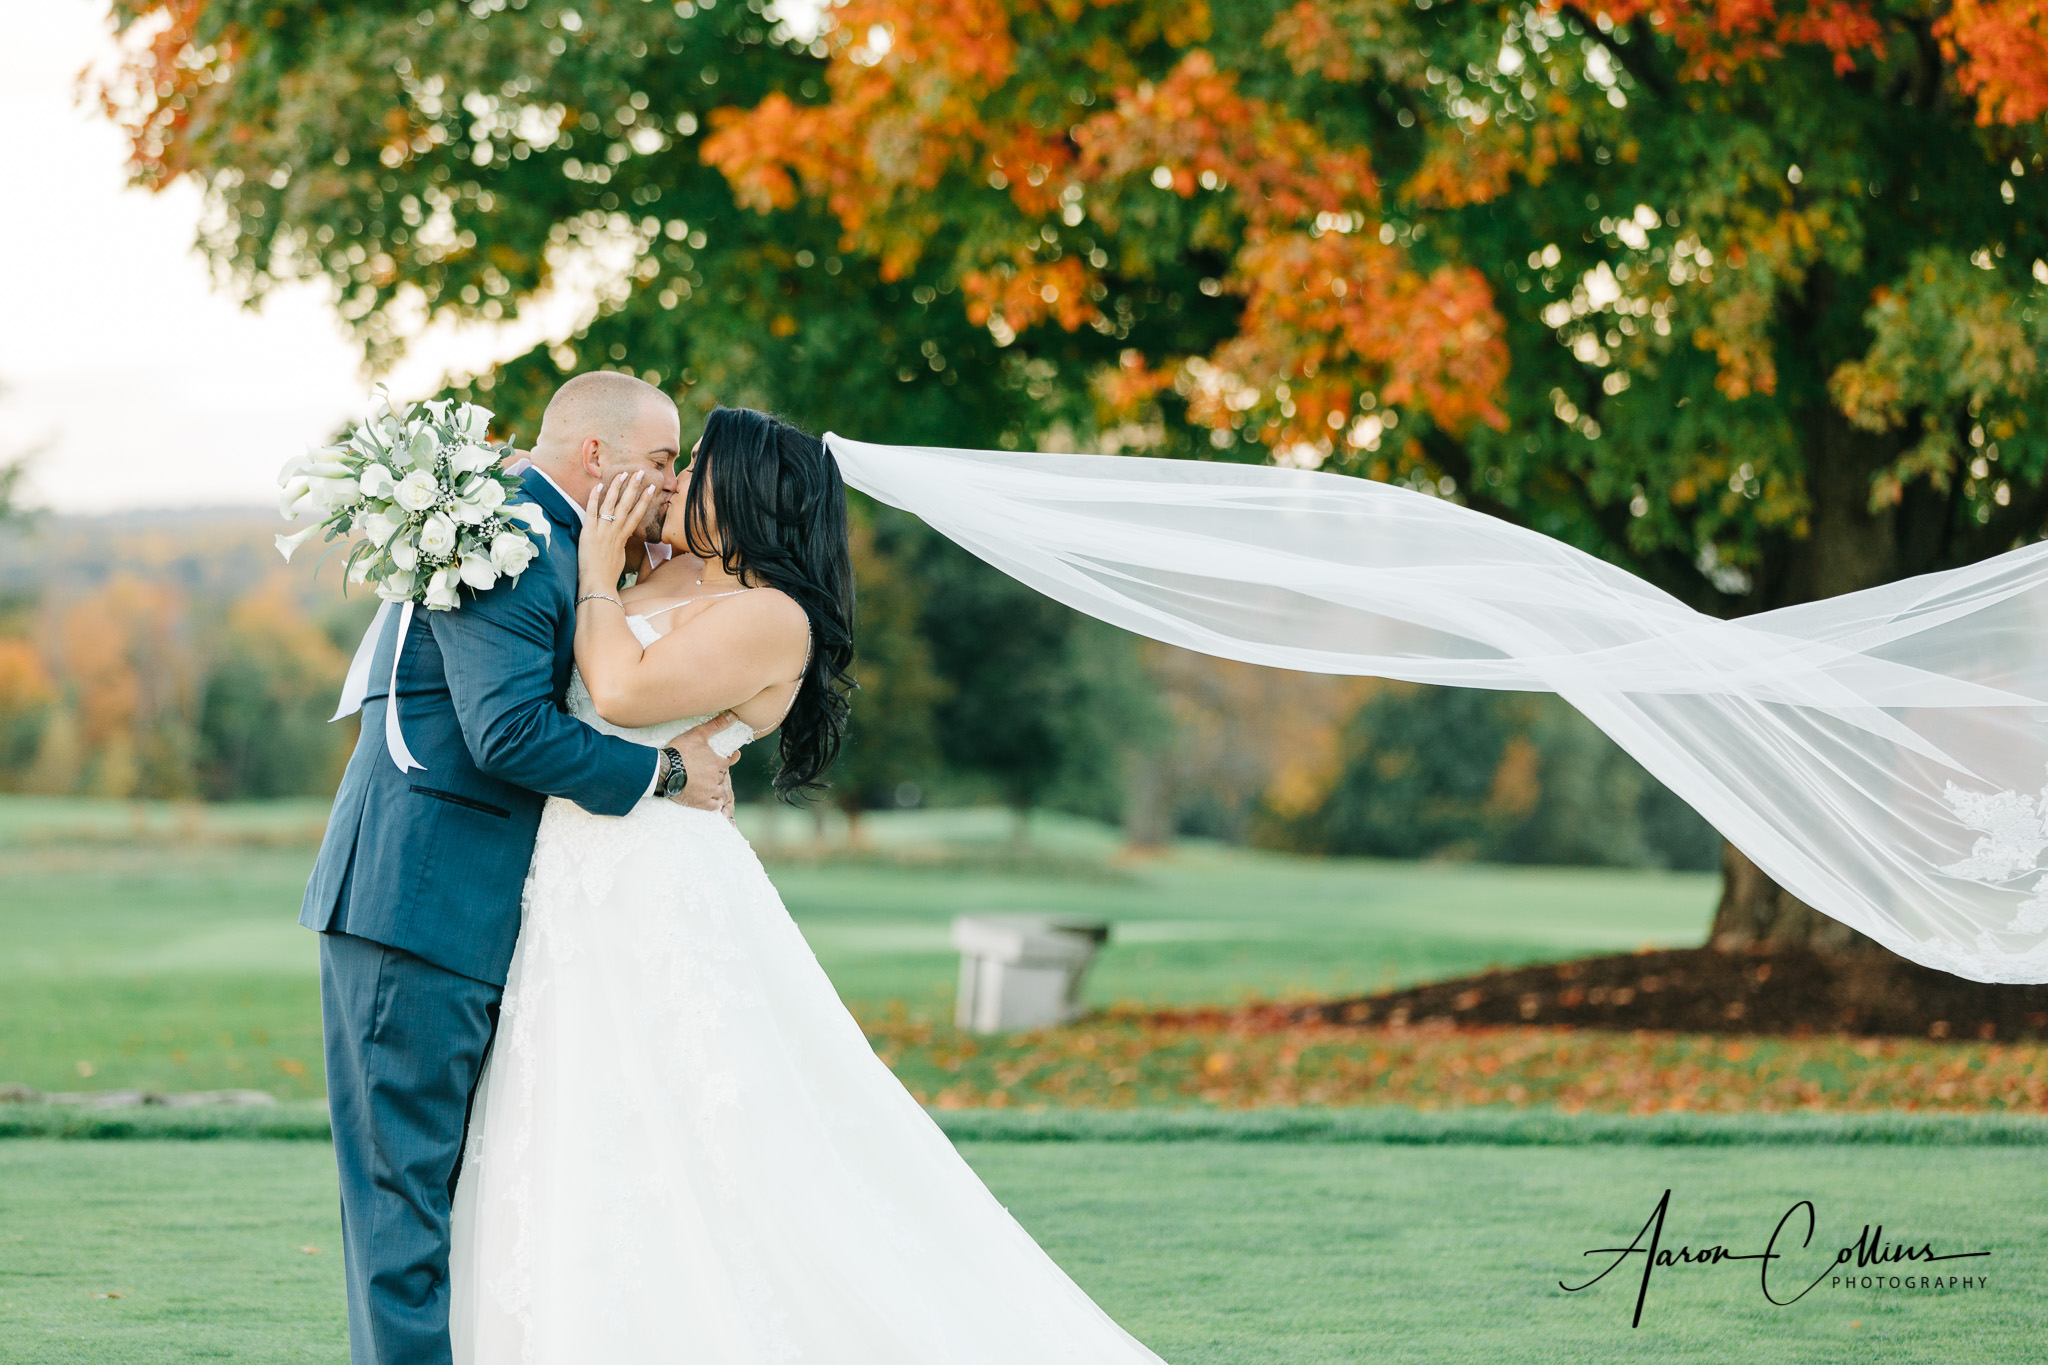 The bride's veil flowing in the wind while she embraces her new husband with a passionate kiss, with fall foliage on full display at Oak Hill Country Club in Fitchburg..